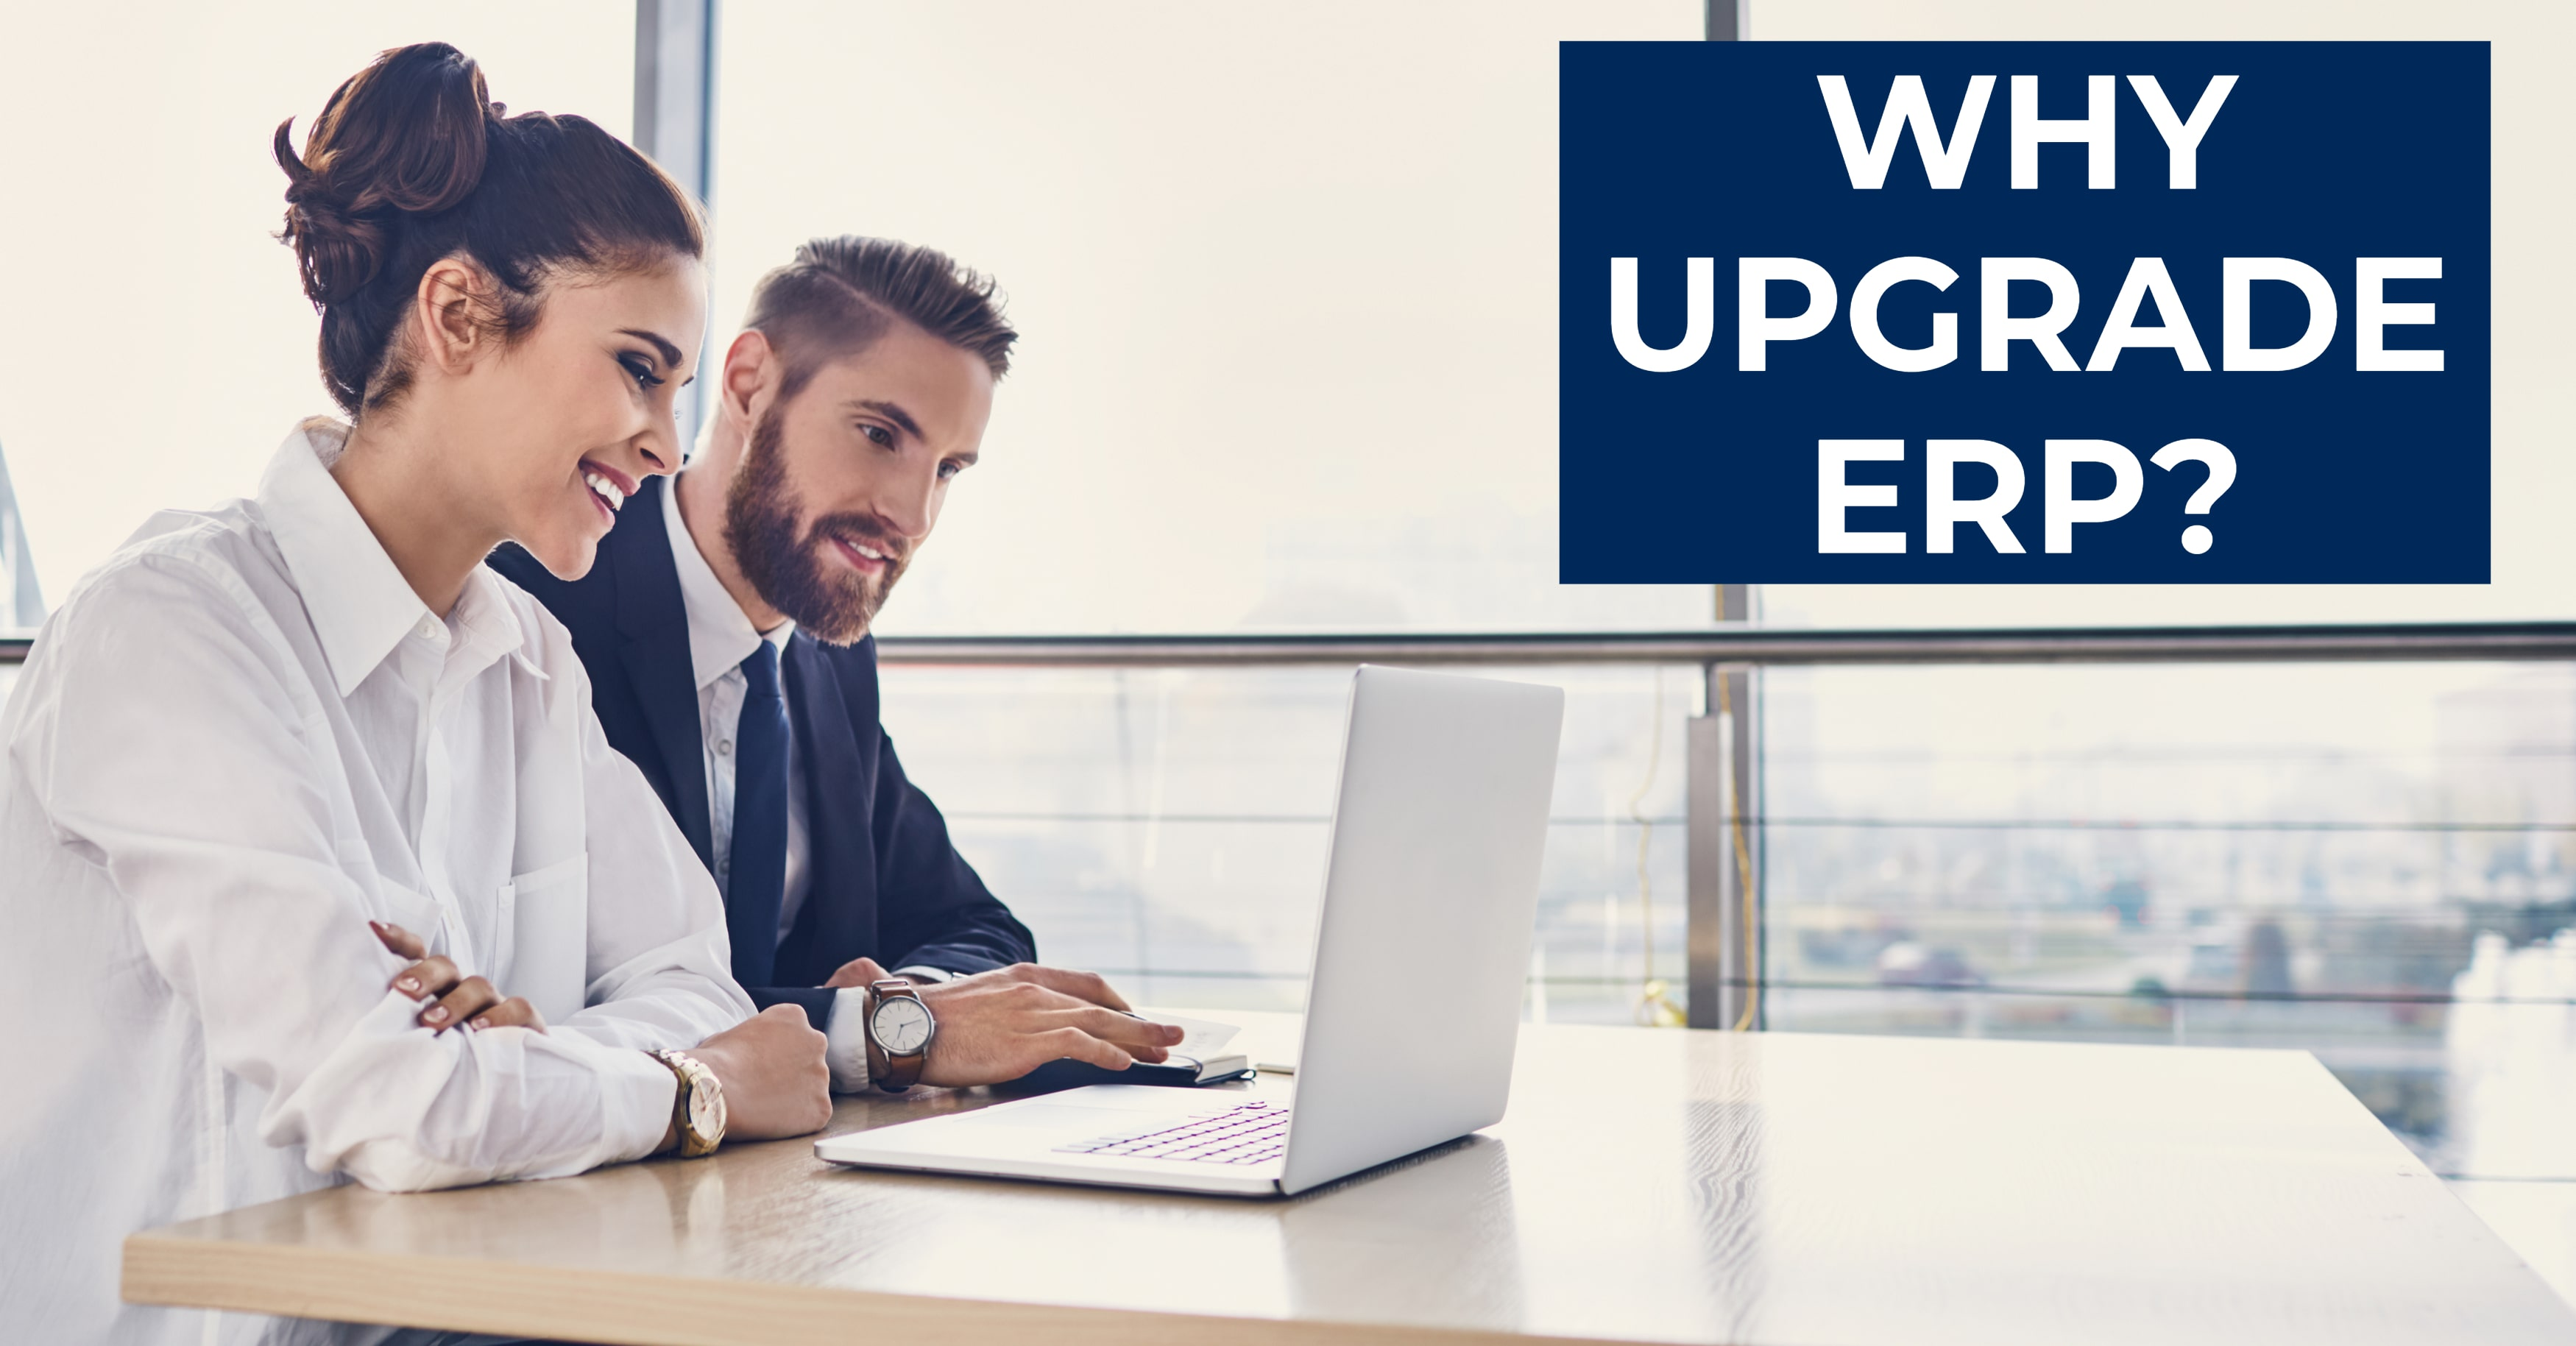 The Business Case for Upgrading ERP